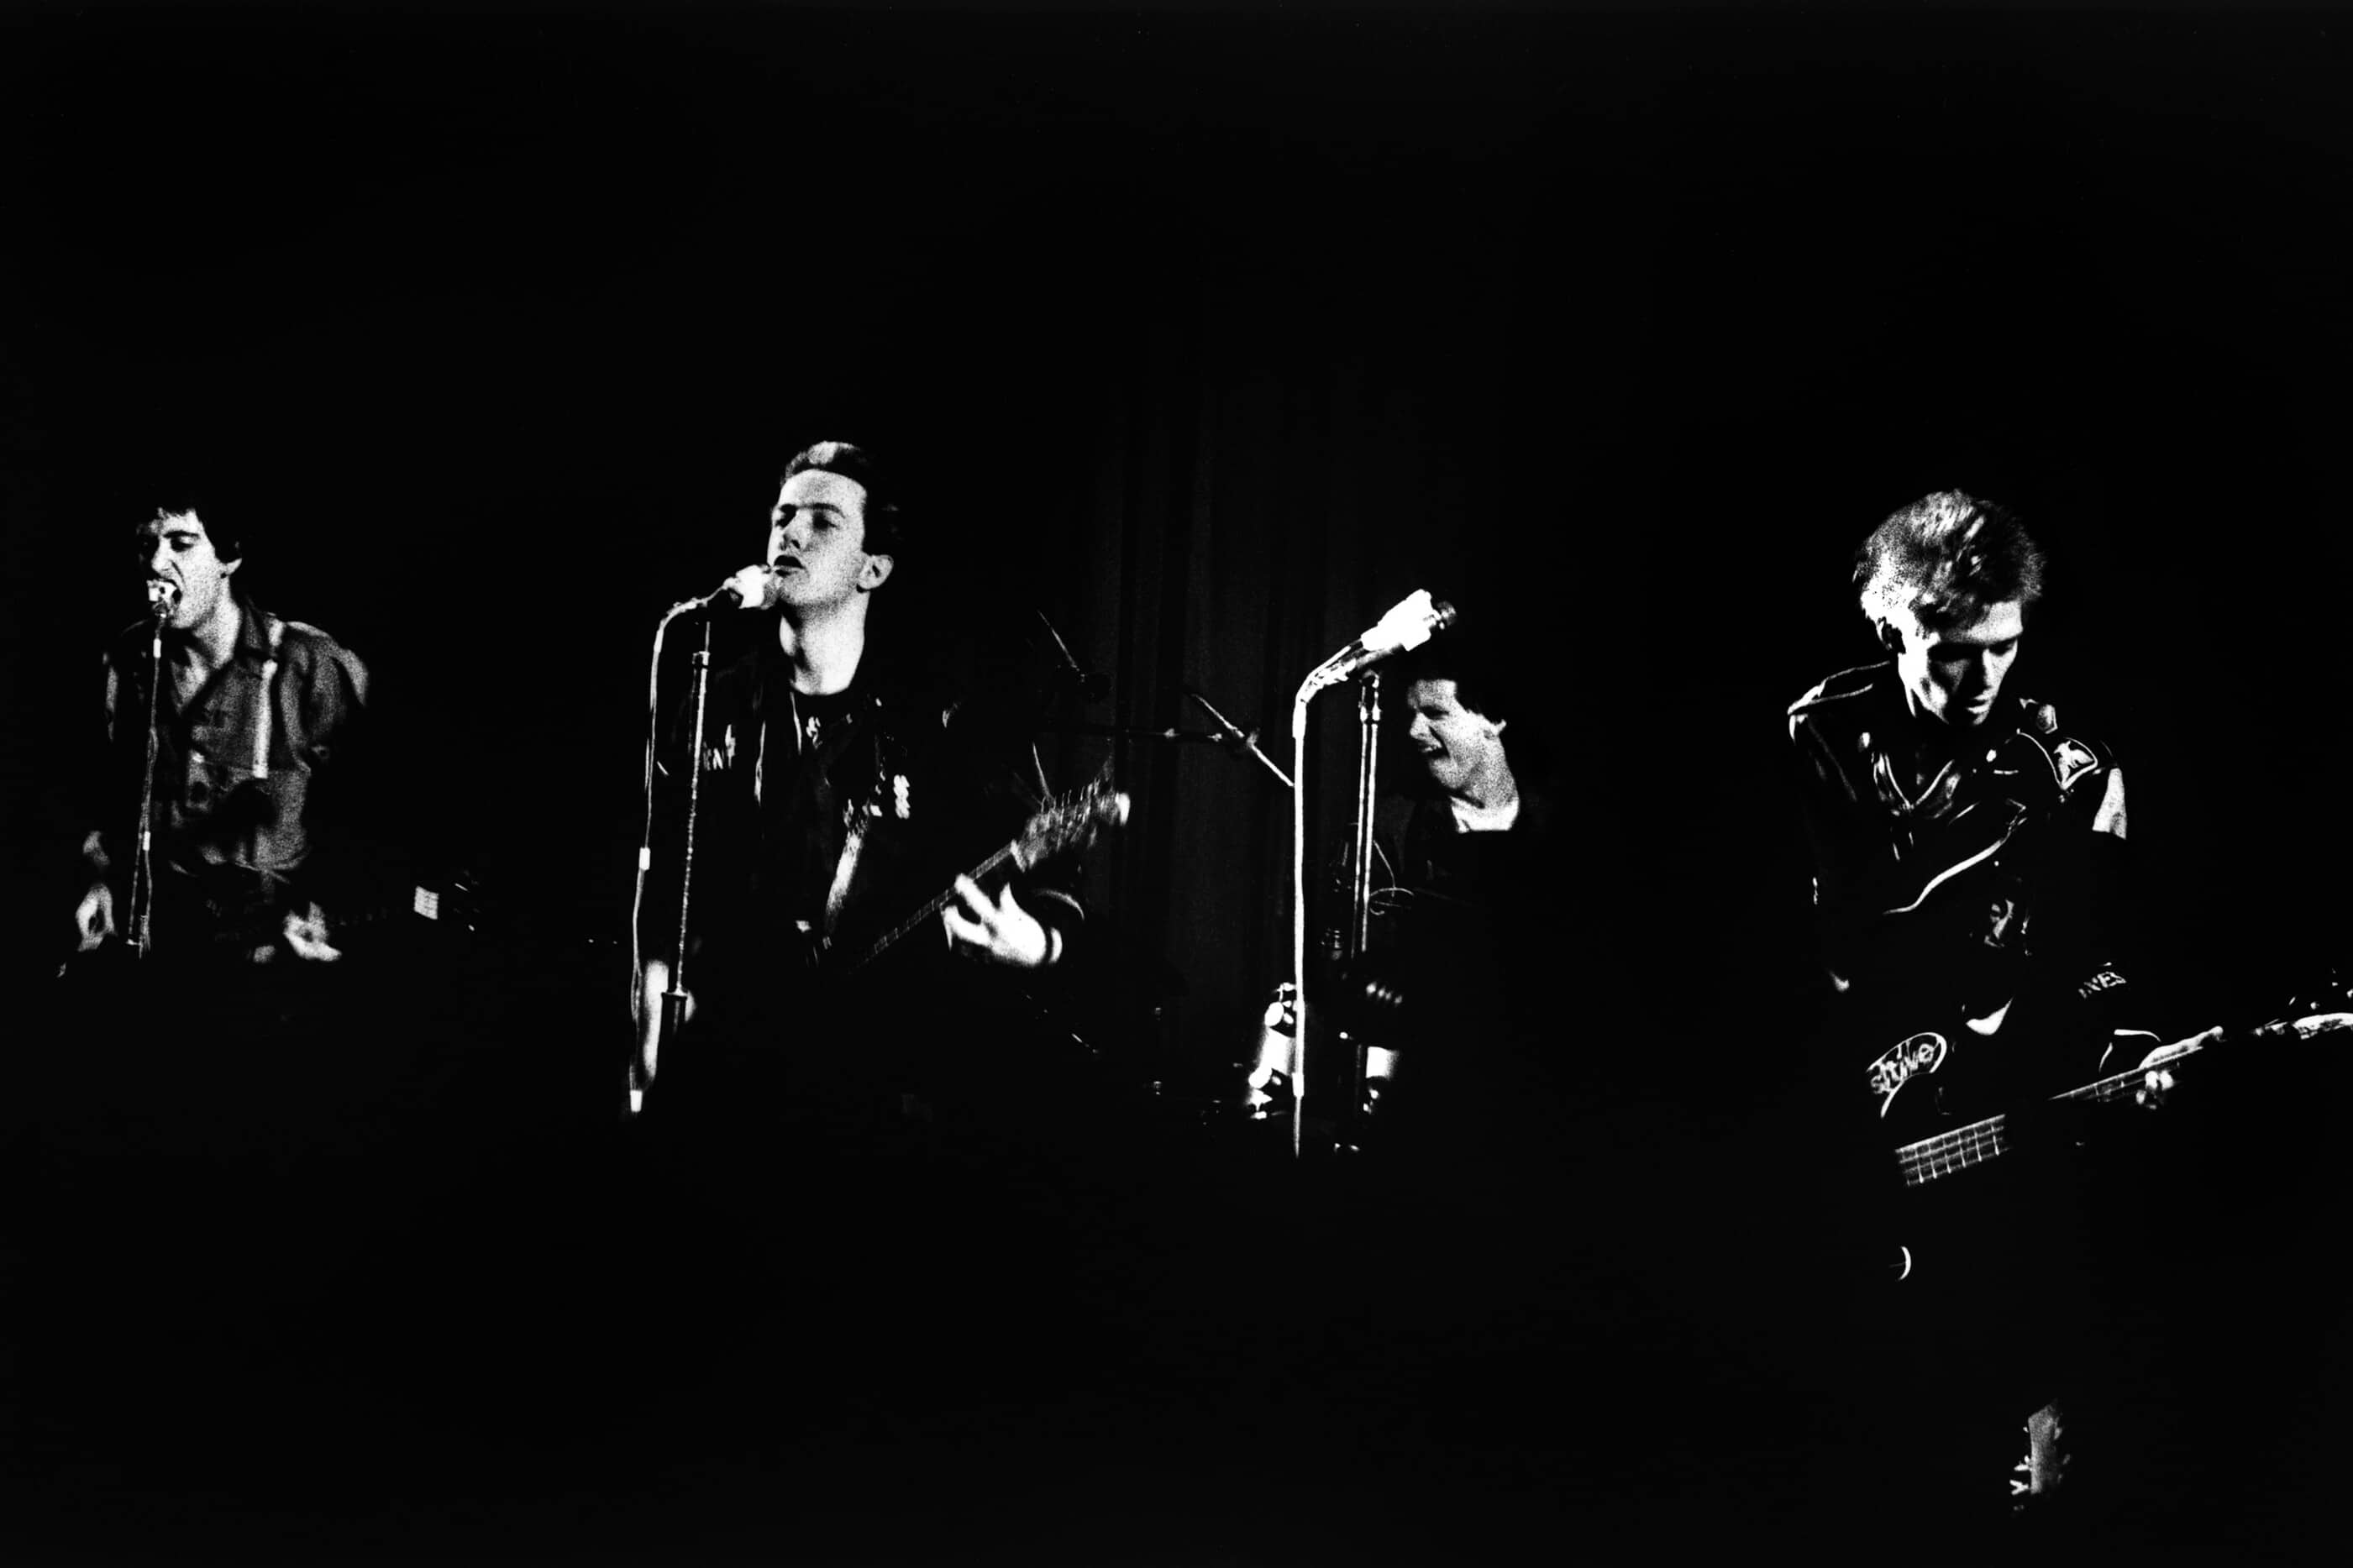 11 March 1977: British punk group The Clash performing at the Coliseum Cinema in Harlesden, London, UK. (Left to right) Mick Jones, Joe Strummer, Terry Chimes and Paul Simonon. (Photograph by Julian Yewdall/Getty Images)